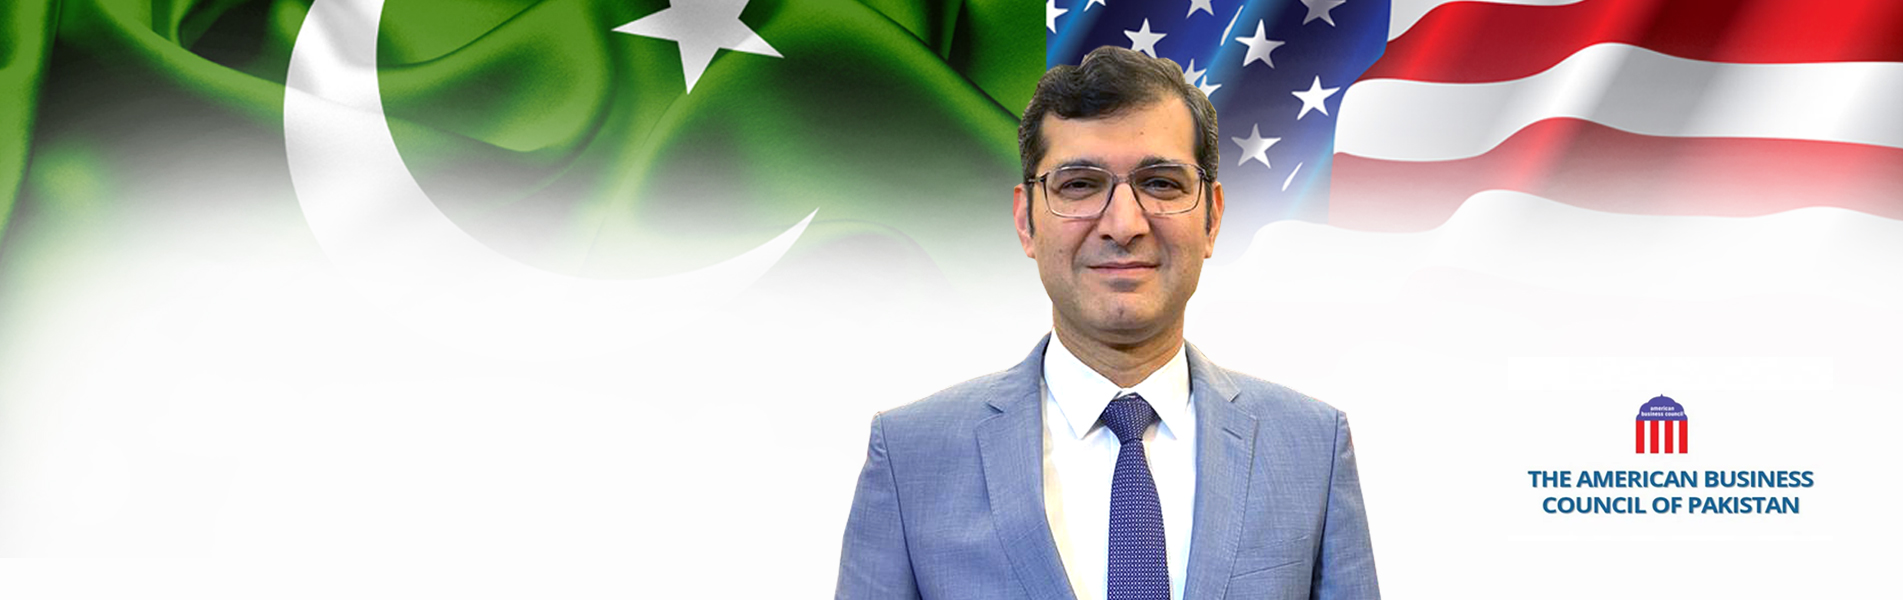 Asif Peer Elected Executive Committee President of the American Business Council of Pakistan